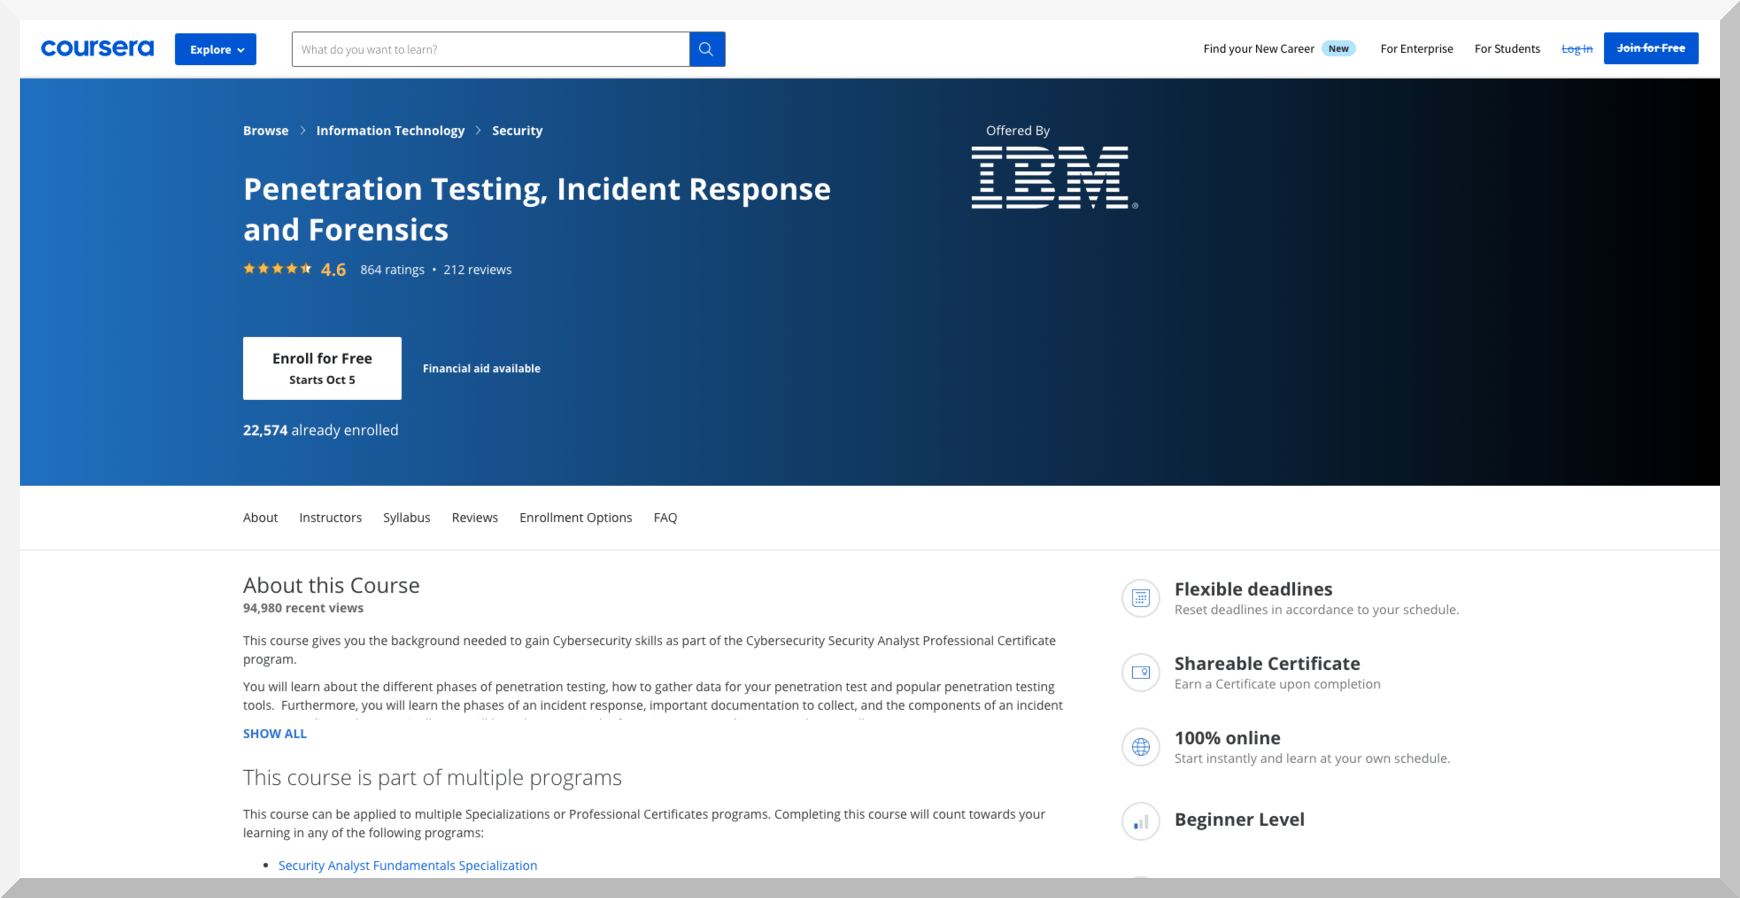 Penetration Testing, Incident Response and Forensics by IBM – Coursera